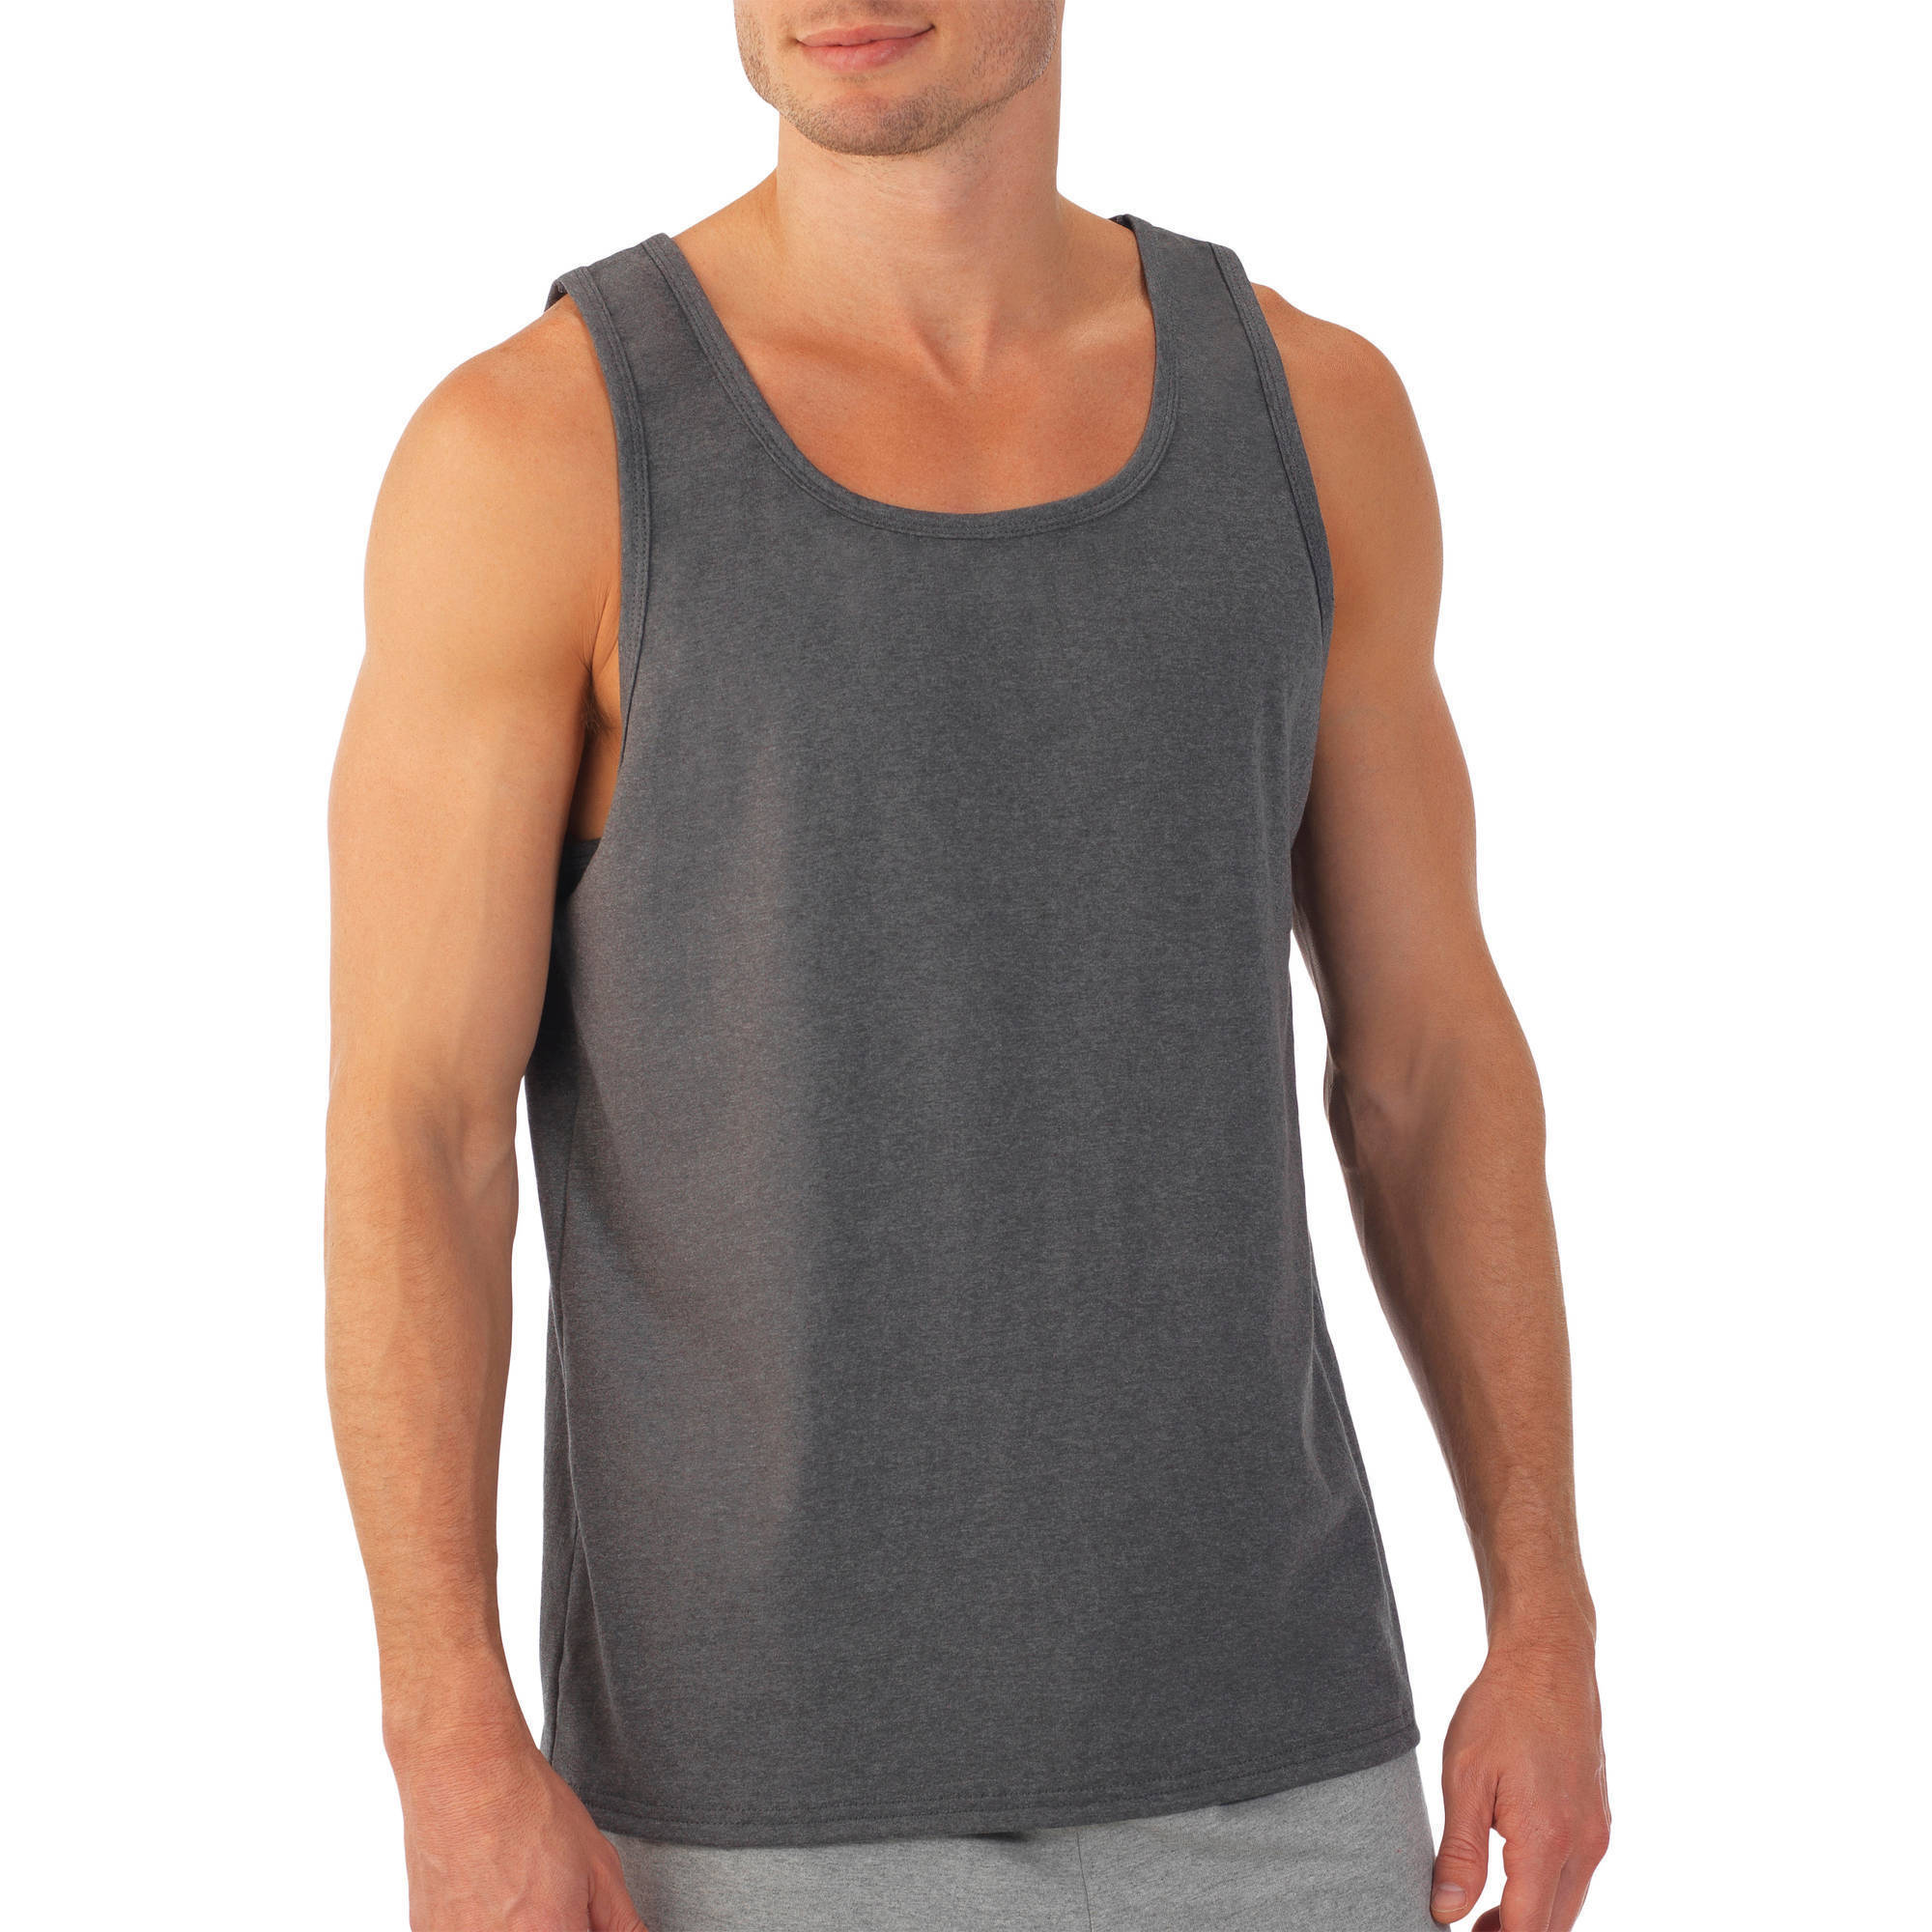 Vital information about men's tank top